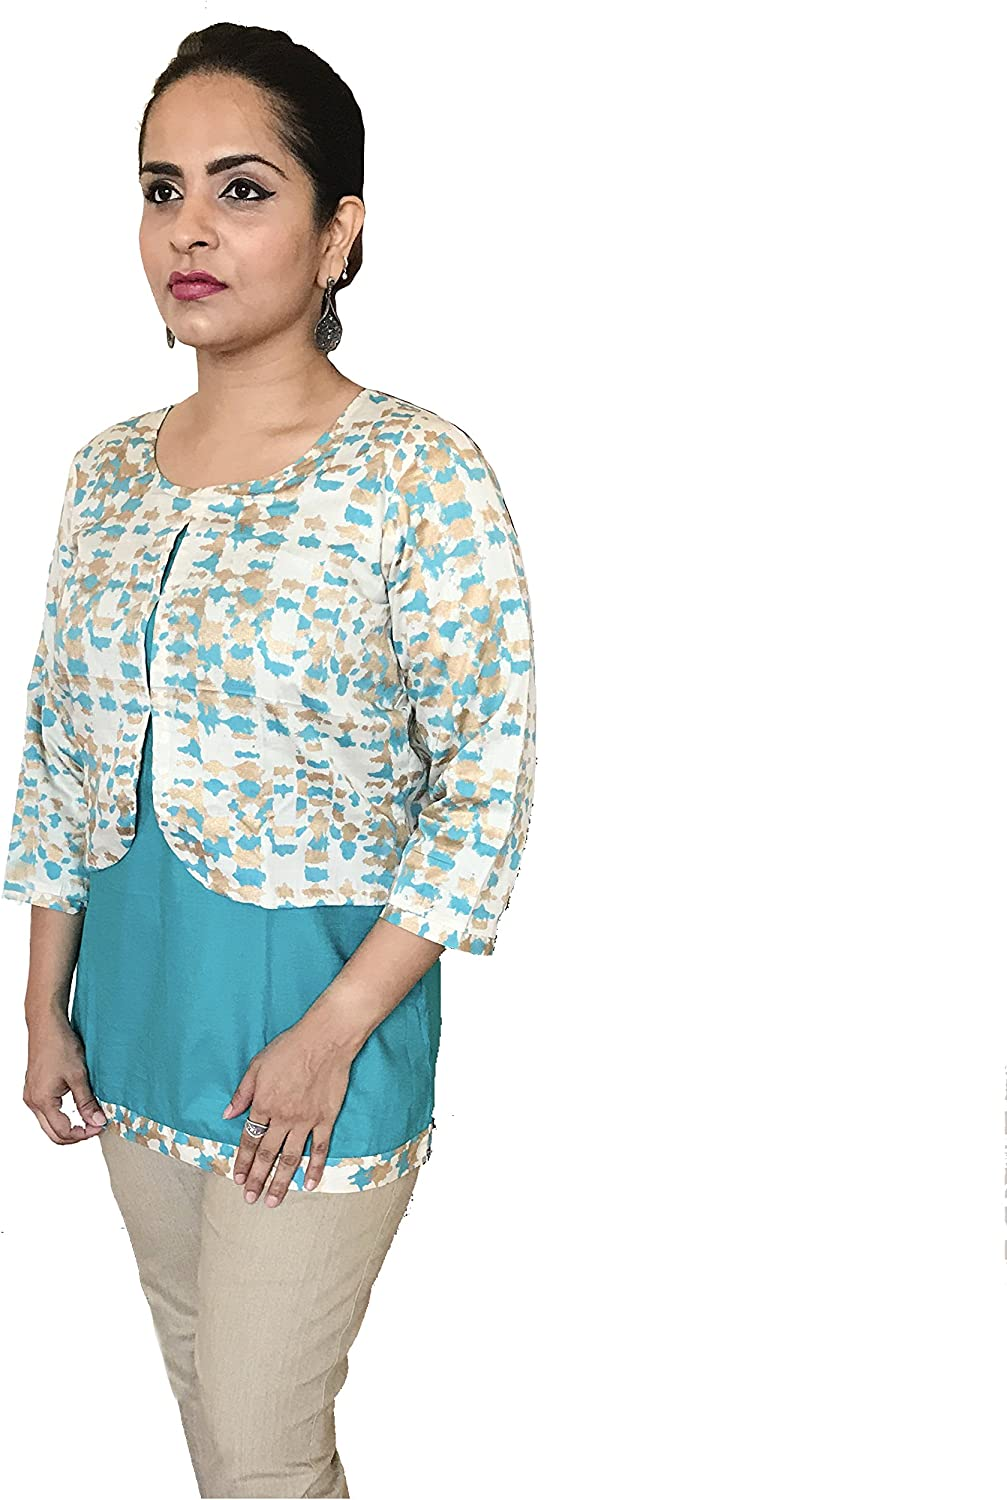 Designer Green colord Reversible Plain and Beige Printed Jacket Style Top.